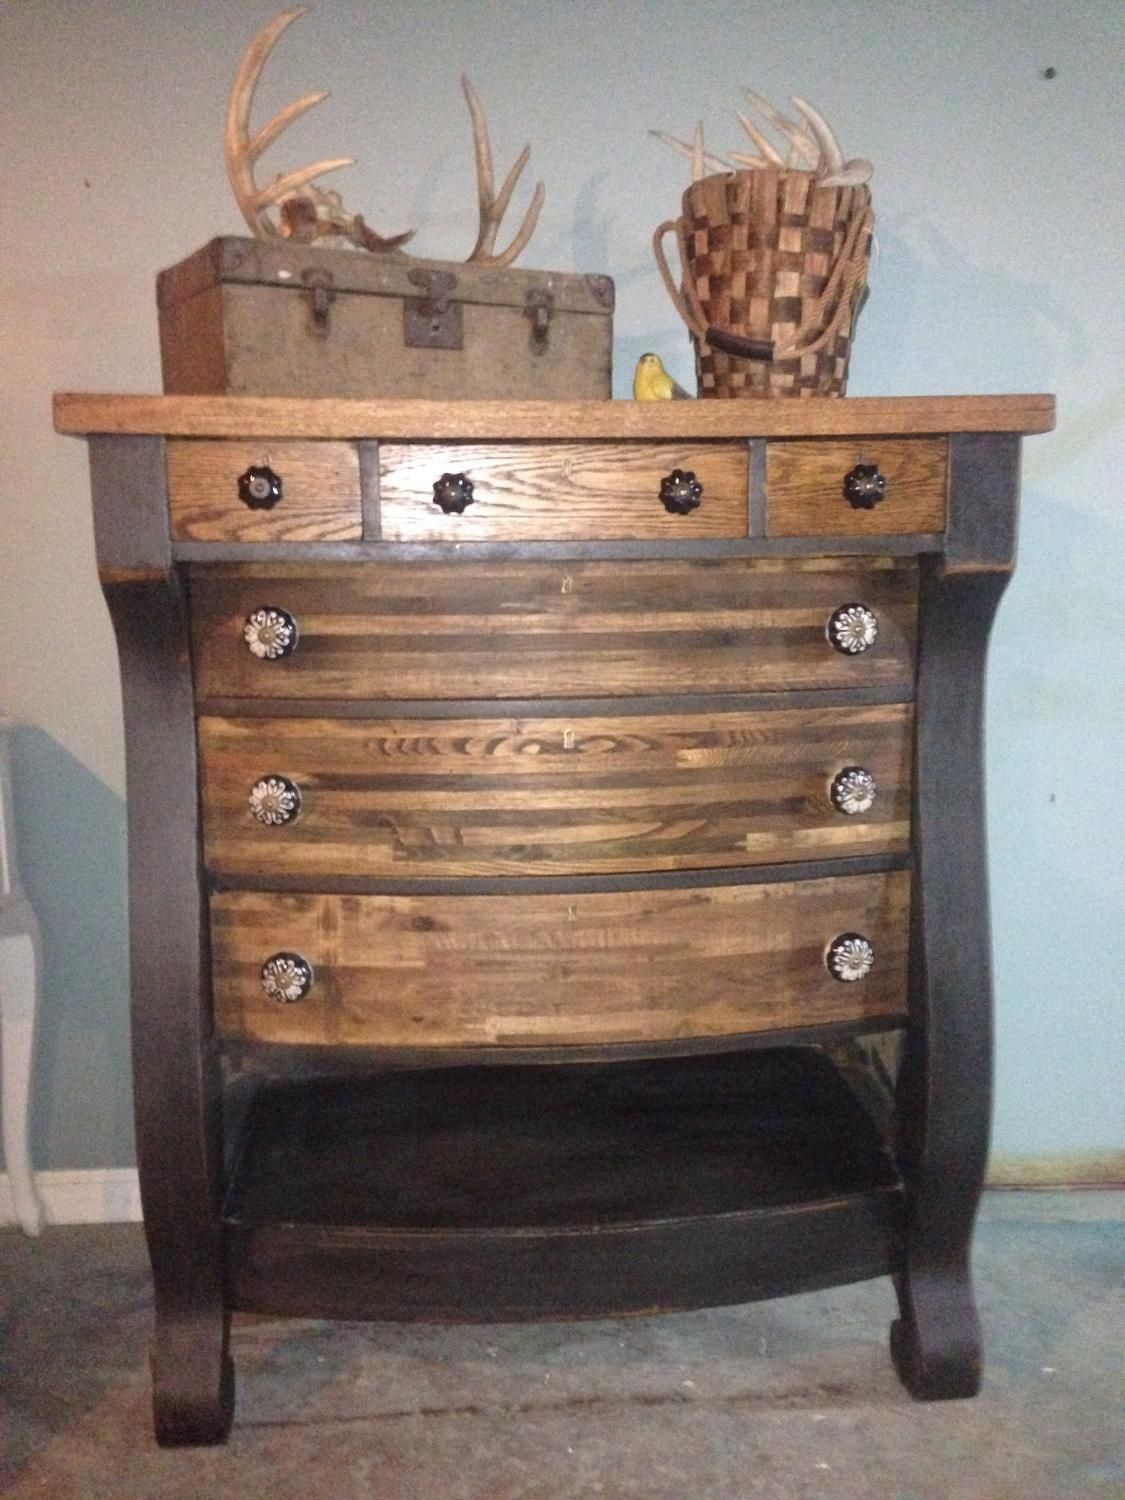 For Sale: Rustic antique dresser chest - Very rustic solid ...